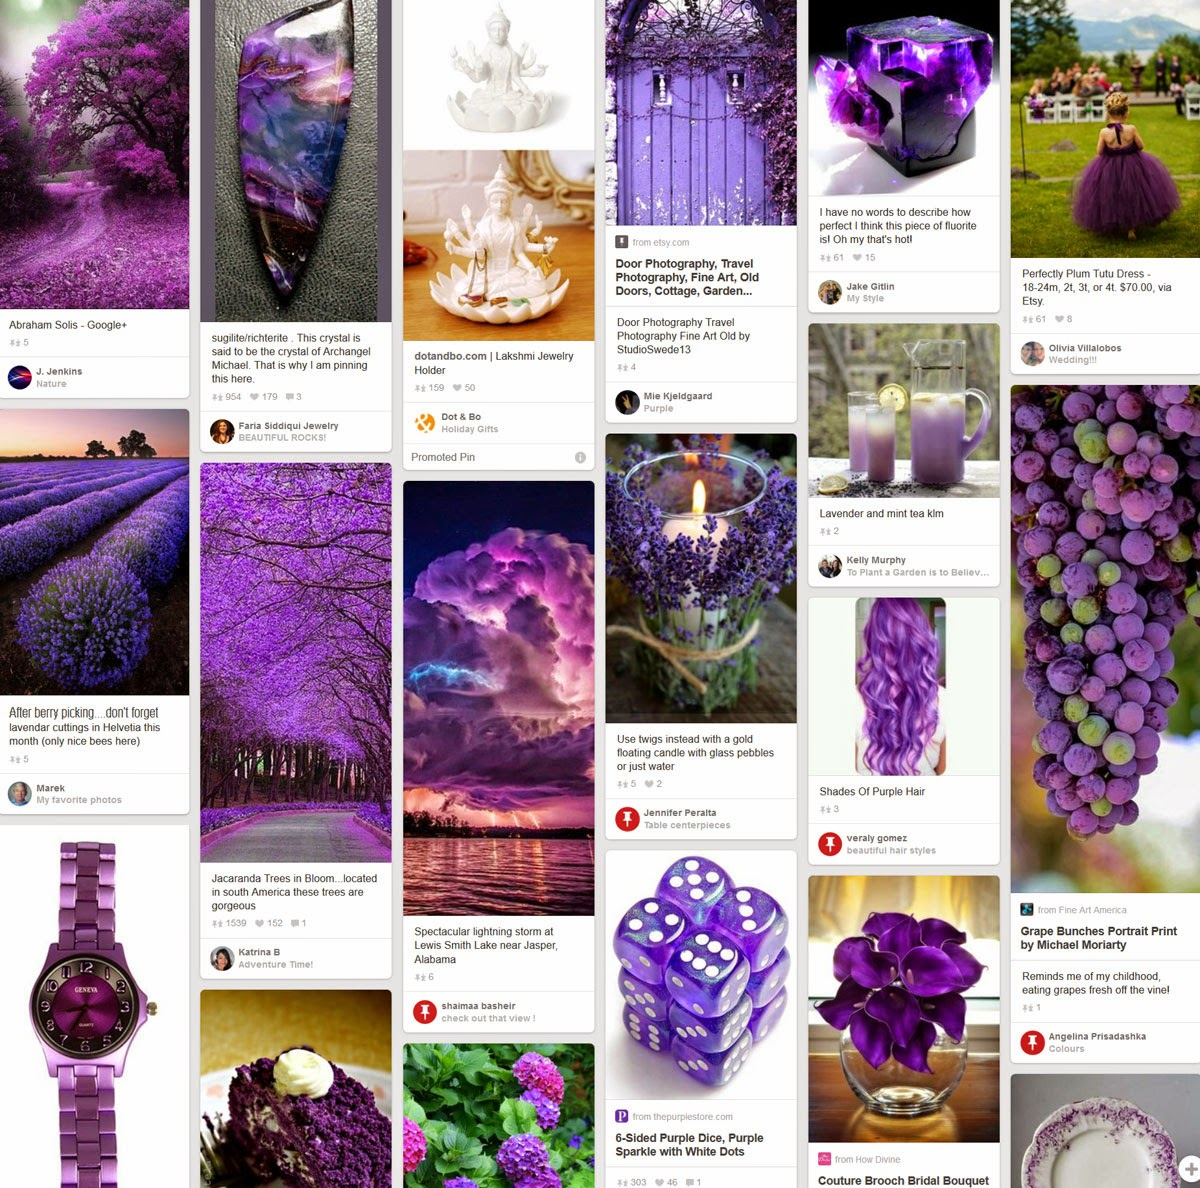 http://www.pinterest.com/search/pins/?q=purple&term_meta[]=purple|typed